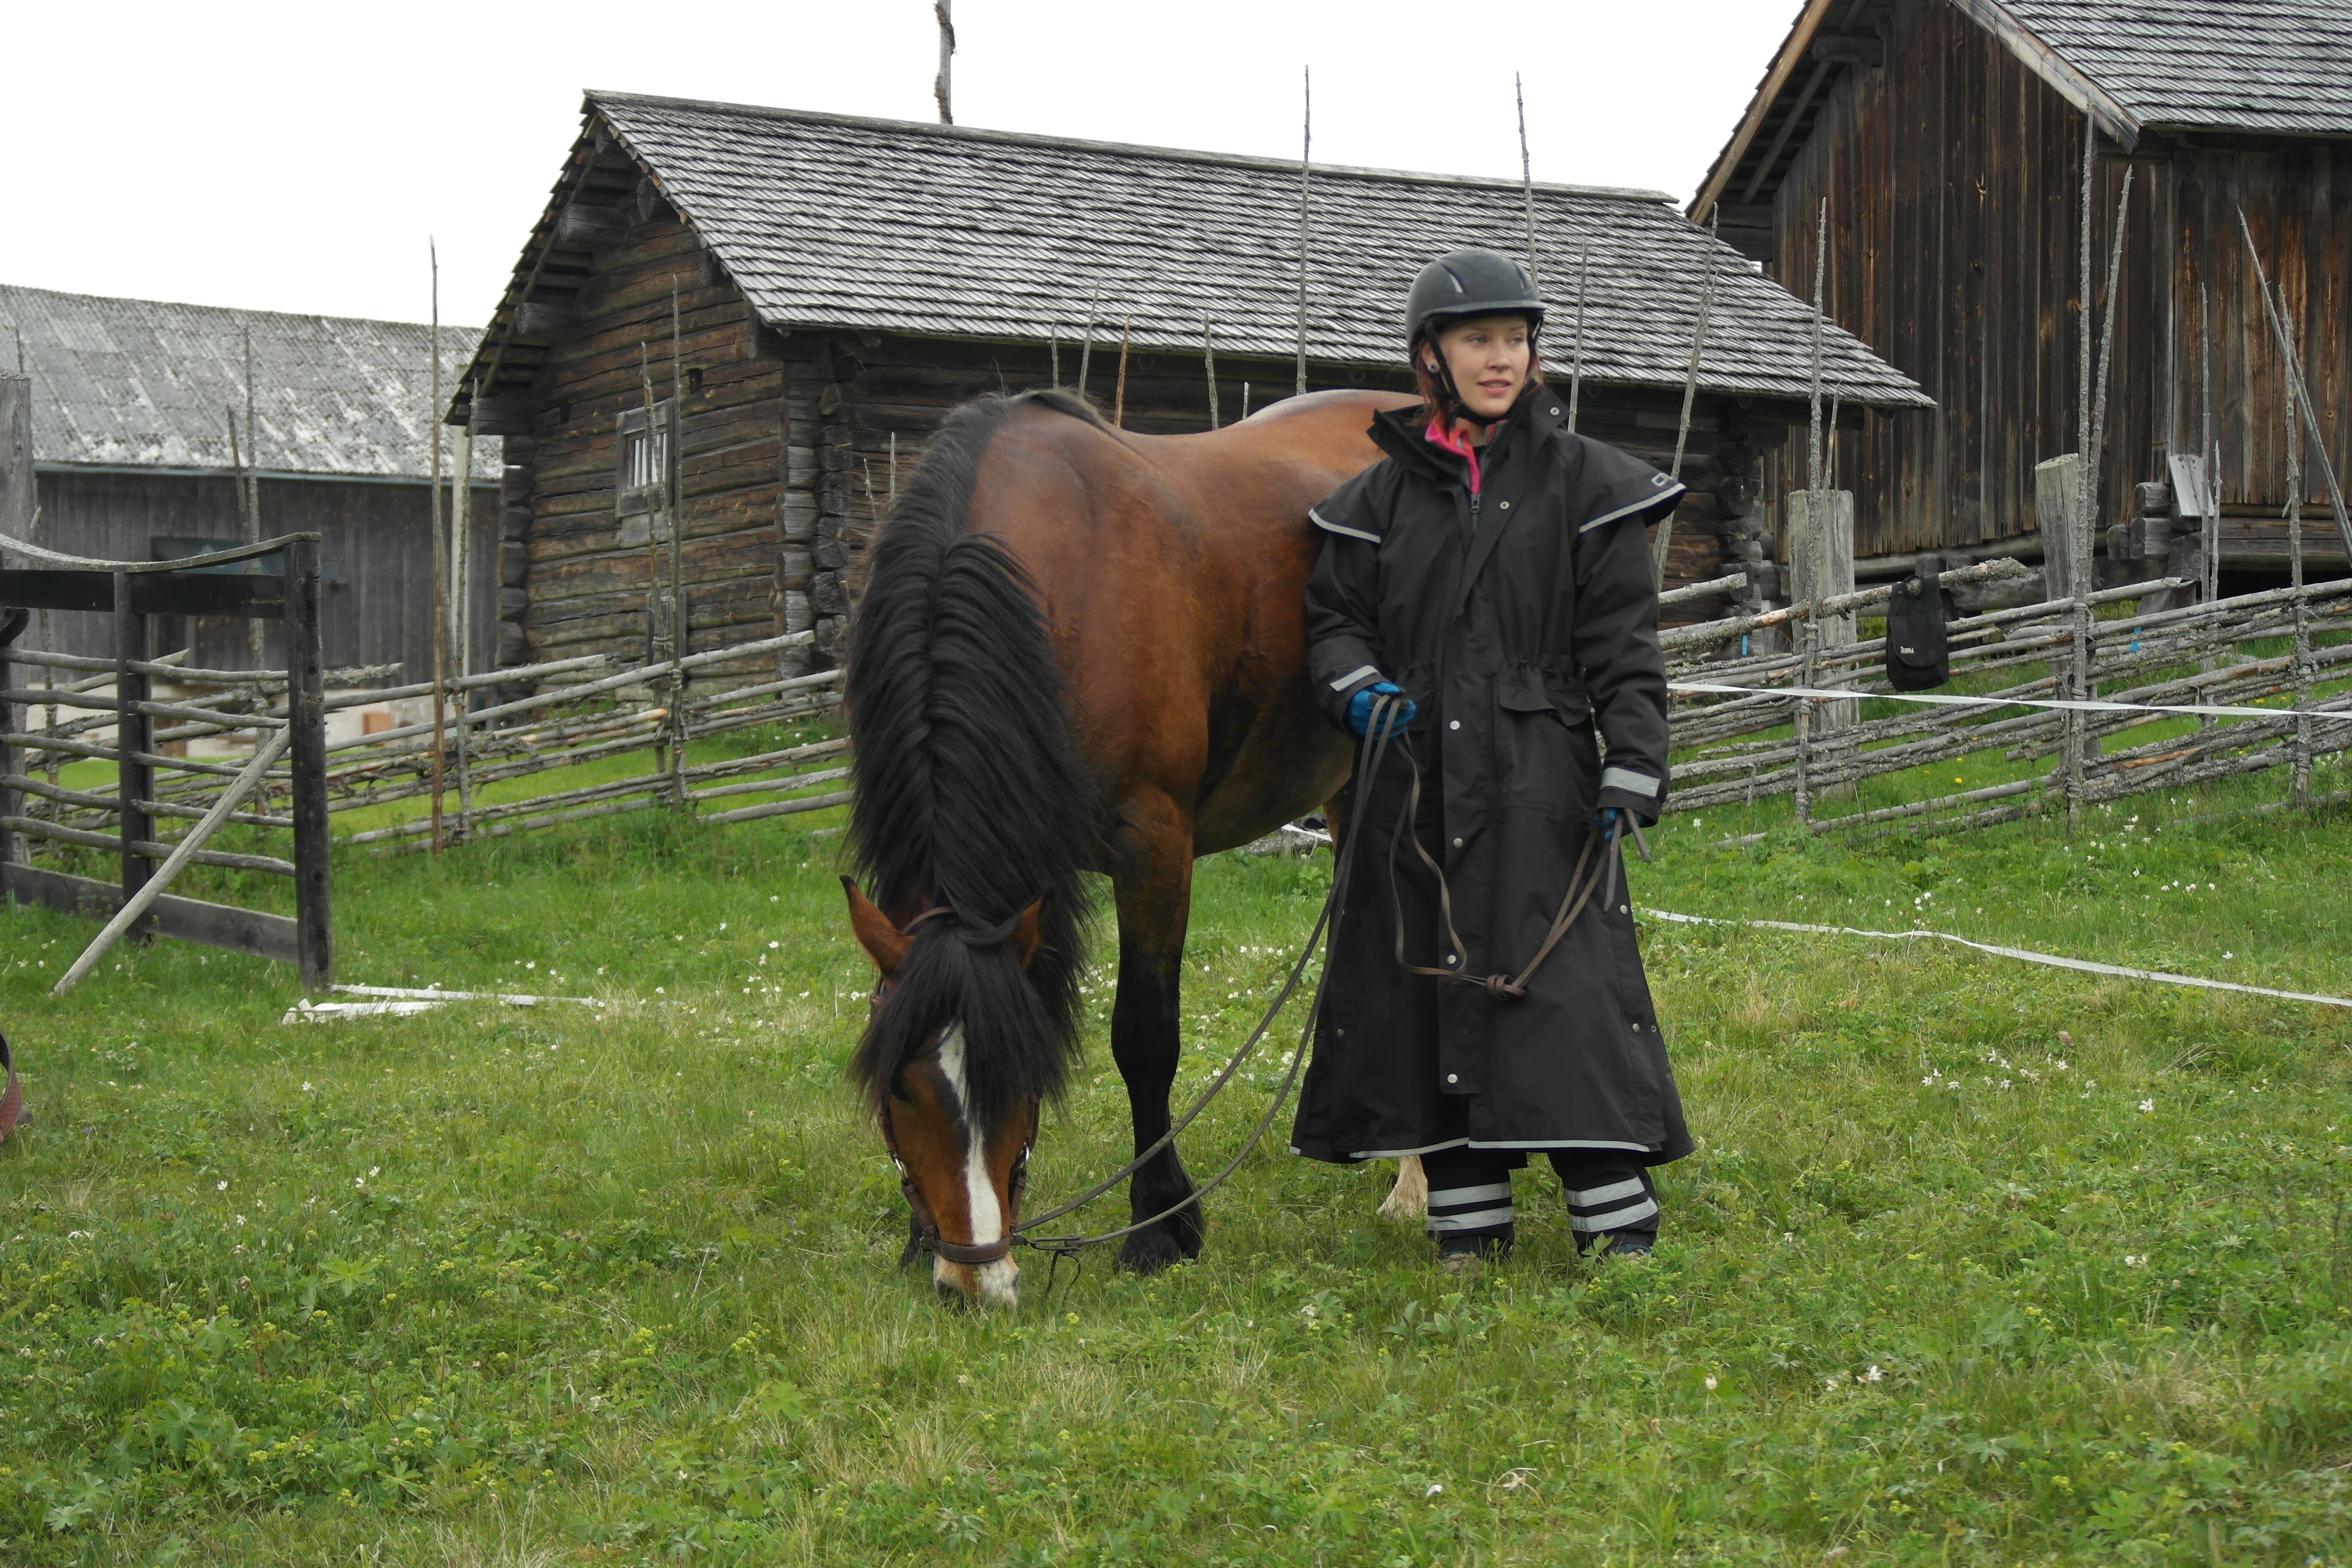 Try out horse riding Western style - Silverhill Stable